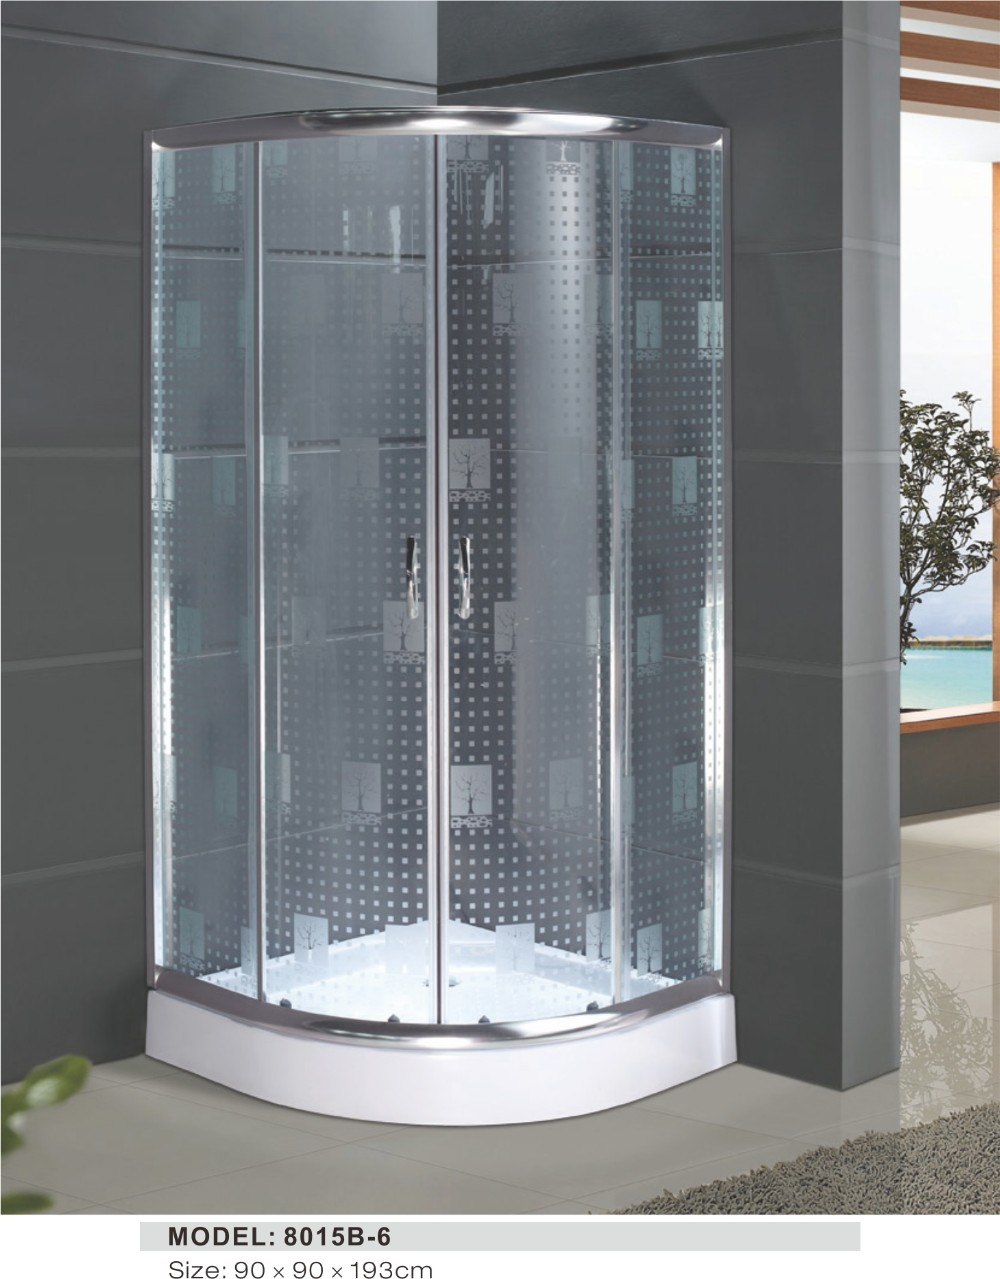 Small Cheap Shower Enclosure With Glass Door And Shower Tray - Buy ...